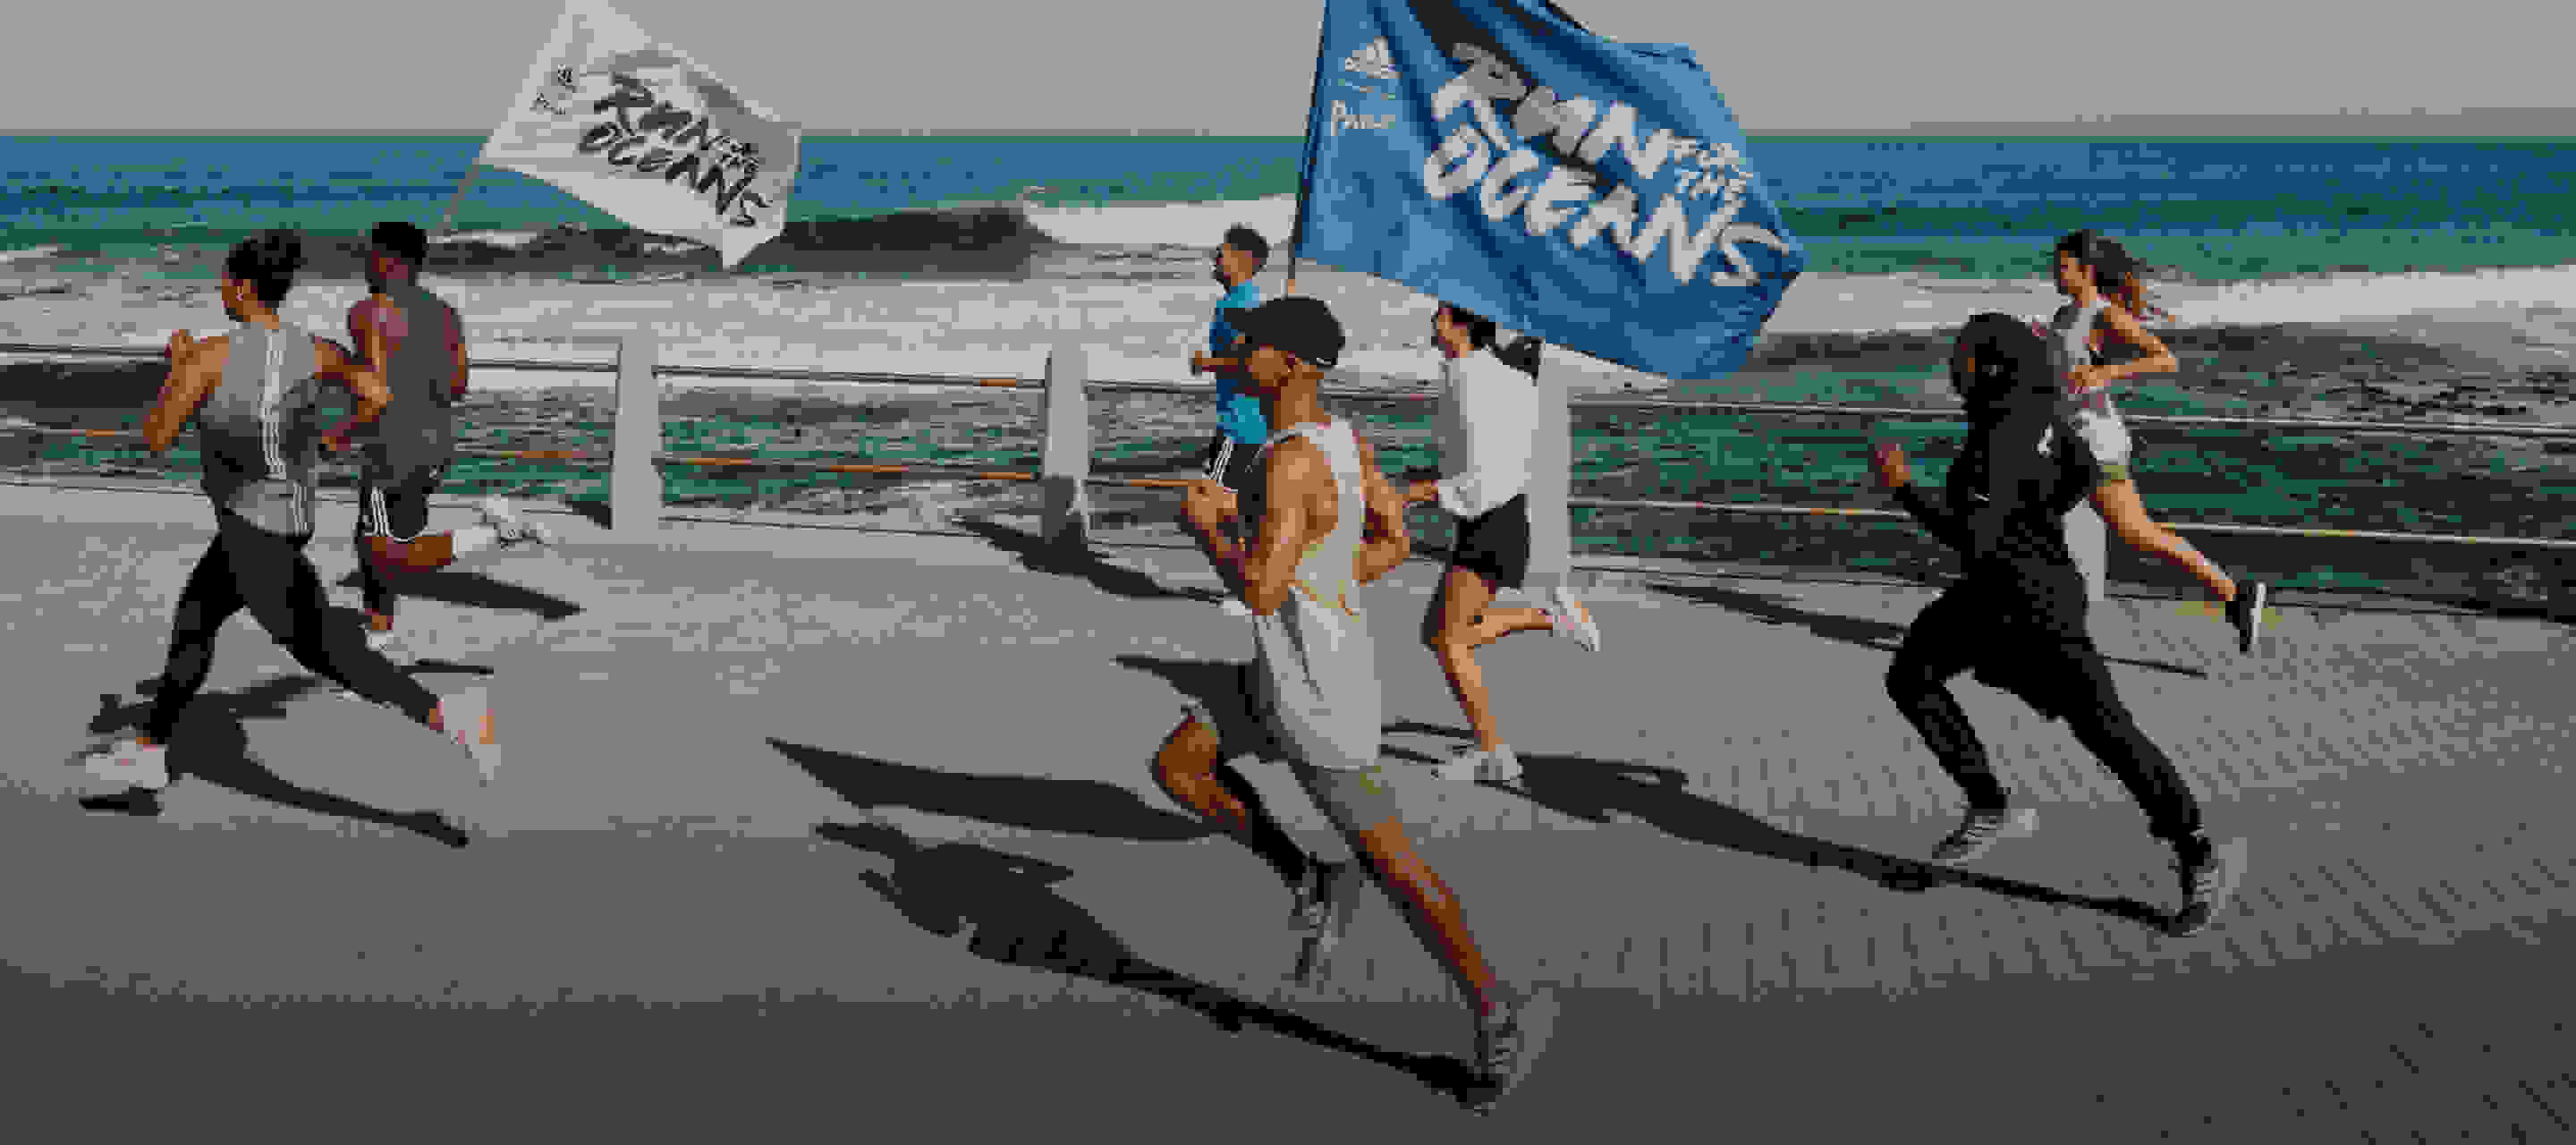 A collage of people running, sea creatures, and Adidas sneakers.